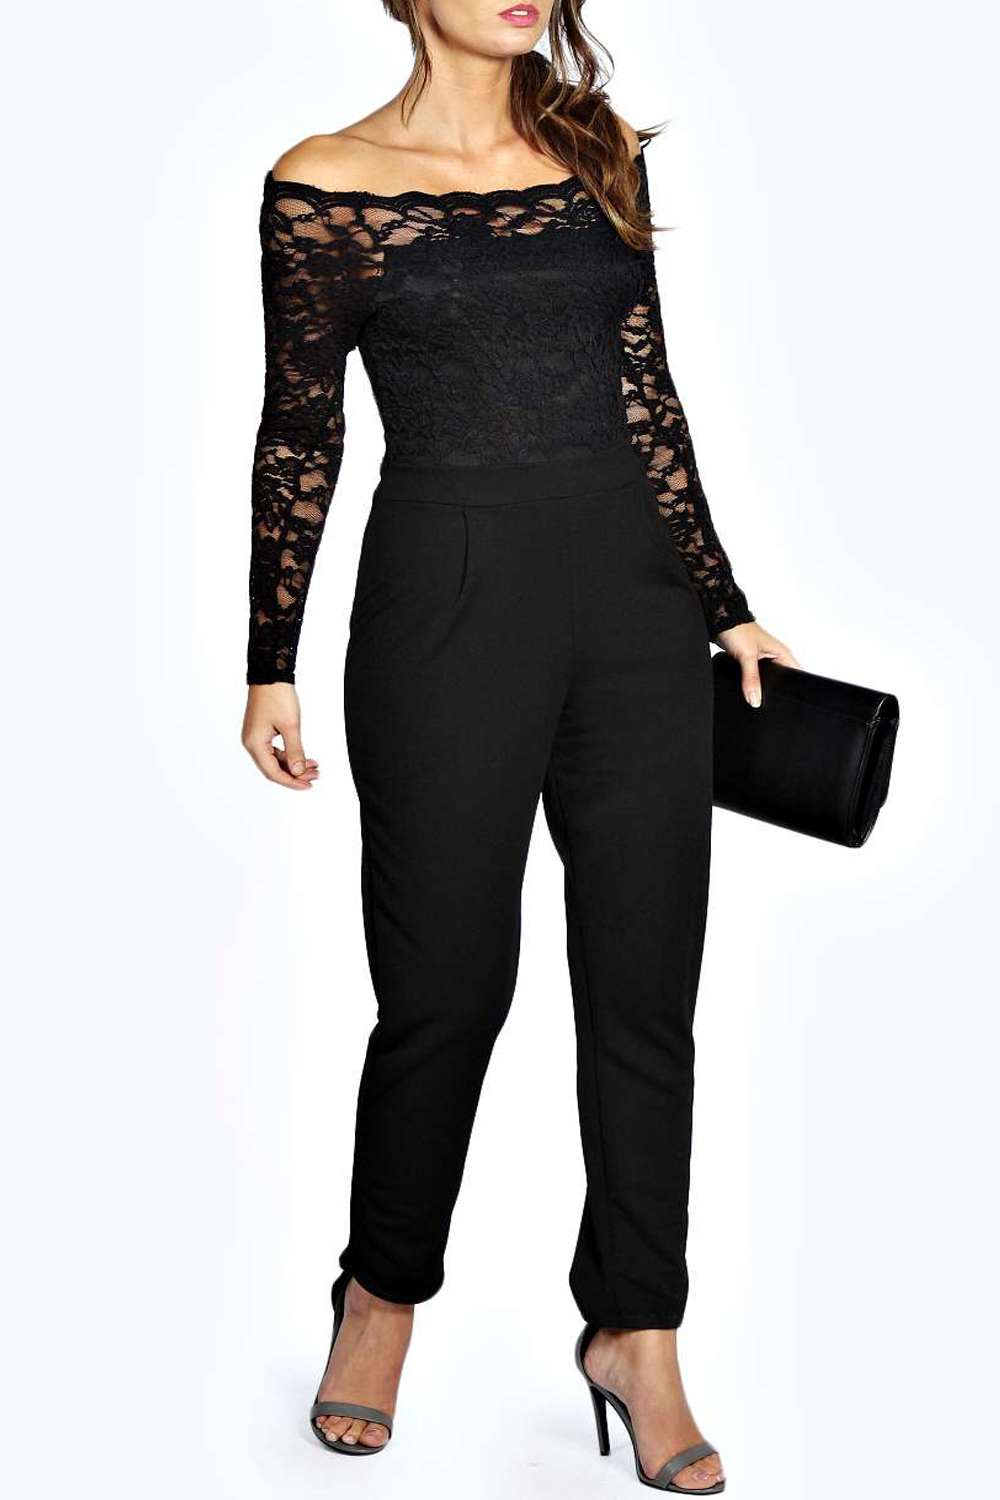 a4c10b89ed1e BOOHOO - - Boohoo Emily BLACK Scallop Lace Off-Shoulder Jumpsuit - Size 8  to 14